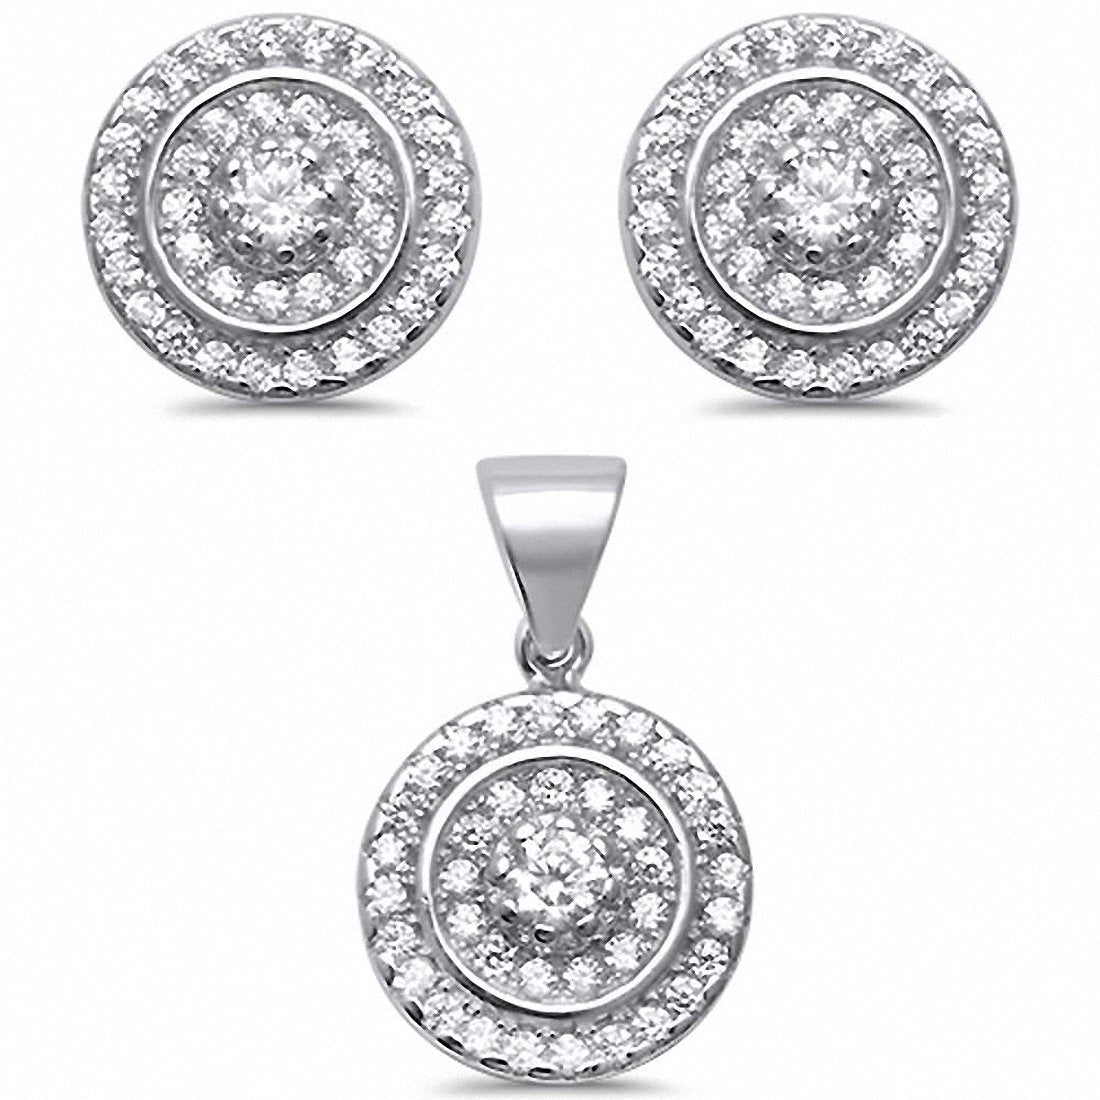 Halo Design Jewelry Set Round Cubic Zirconia 925 Sterling Silver Choose Color